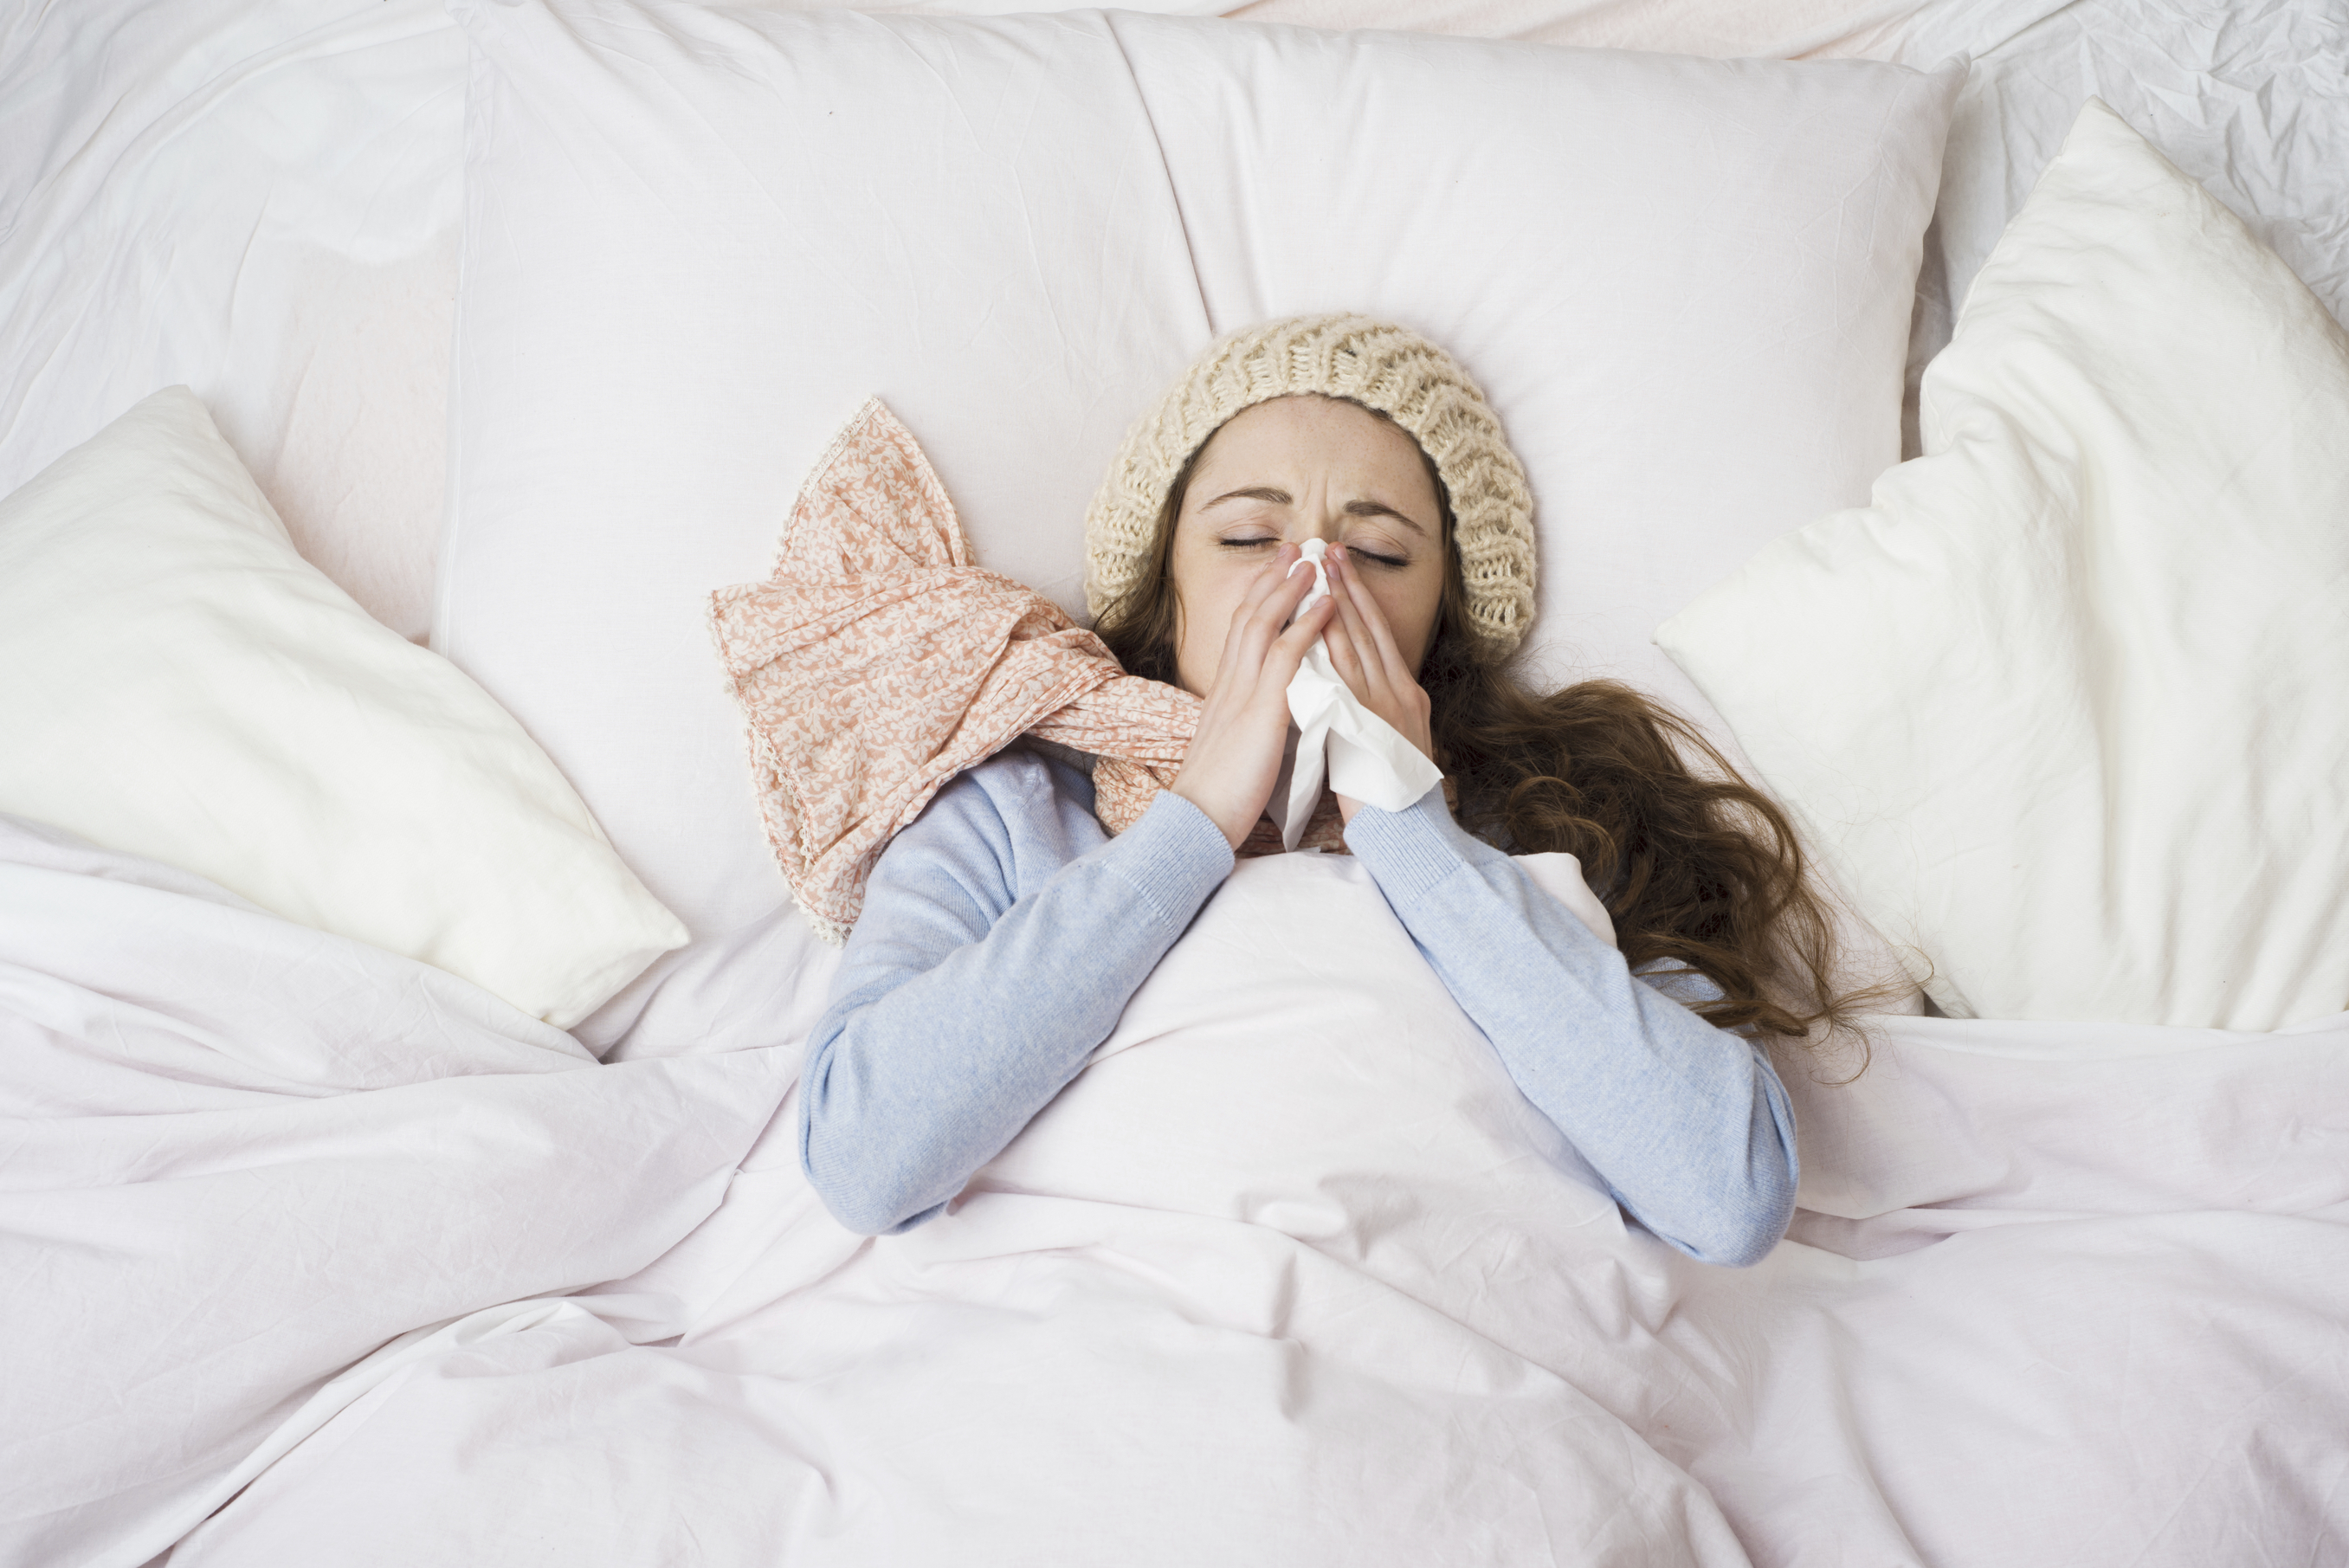 Do you actually have the flu or is it just a cold? How to tell the difference